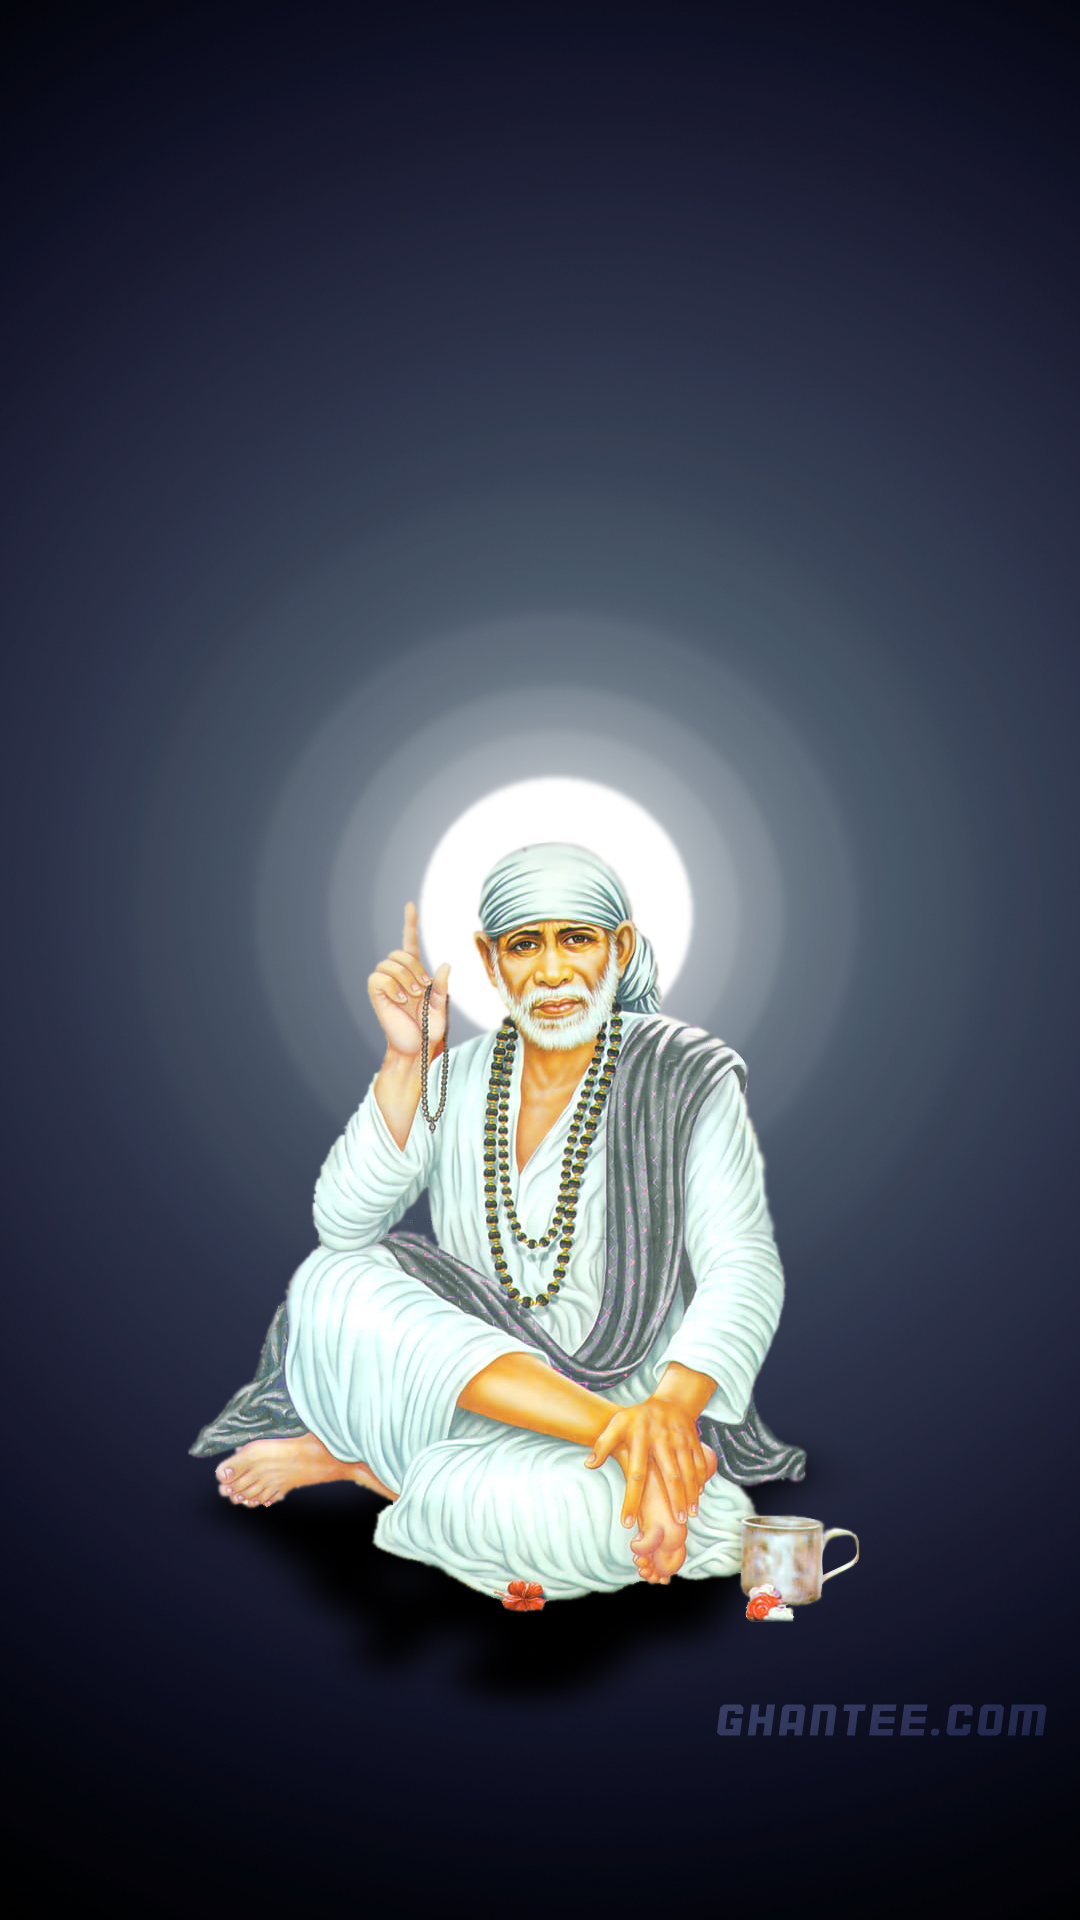 9 sai baba images in Hd resolution